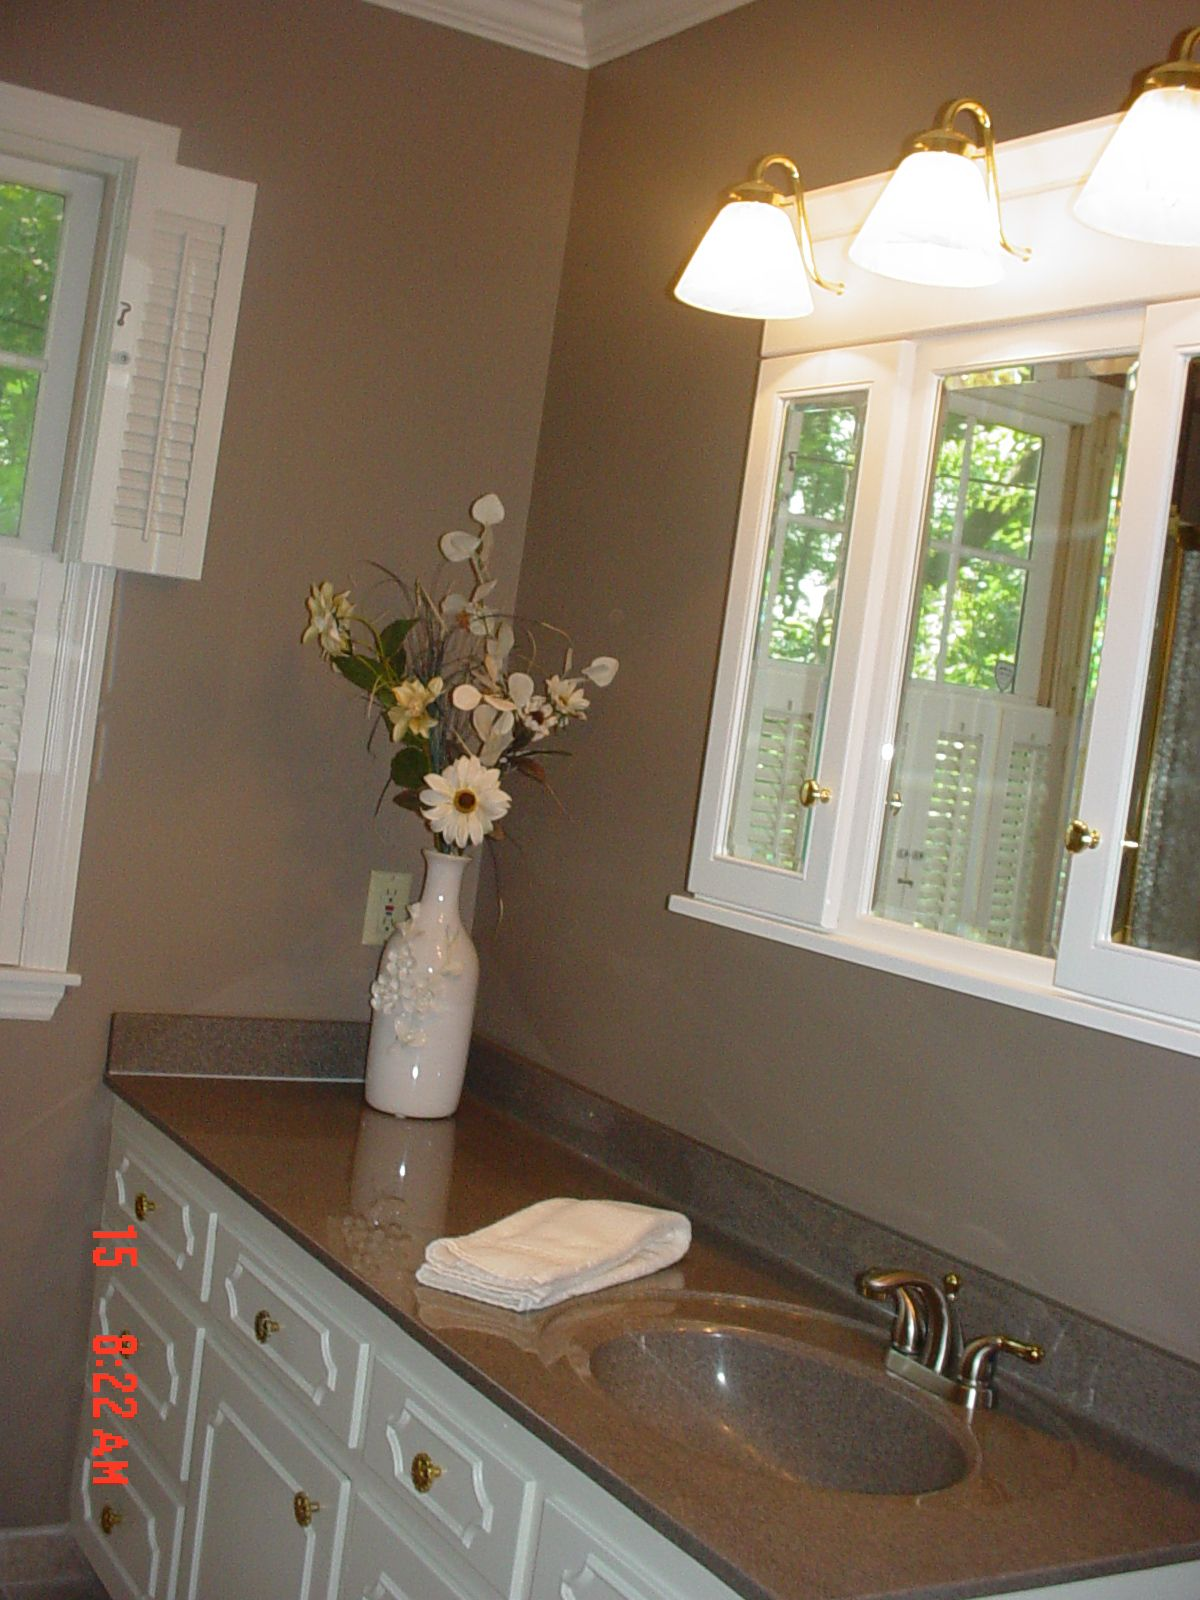 1940 Bathroom Design. New Countertops And Medicine Cabinet On A Vintage  Vanity Made This 1940